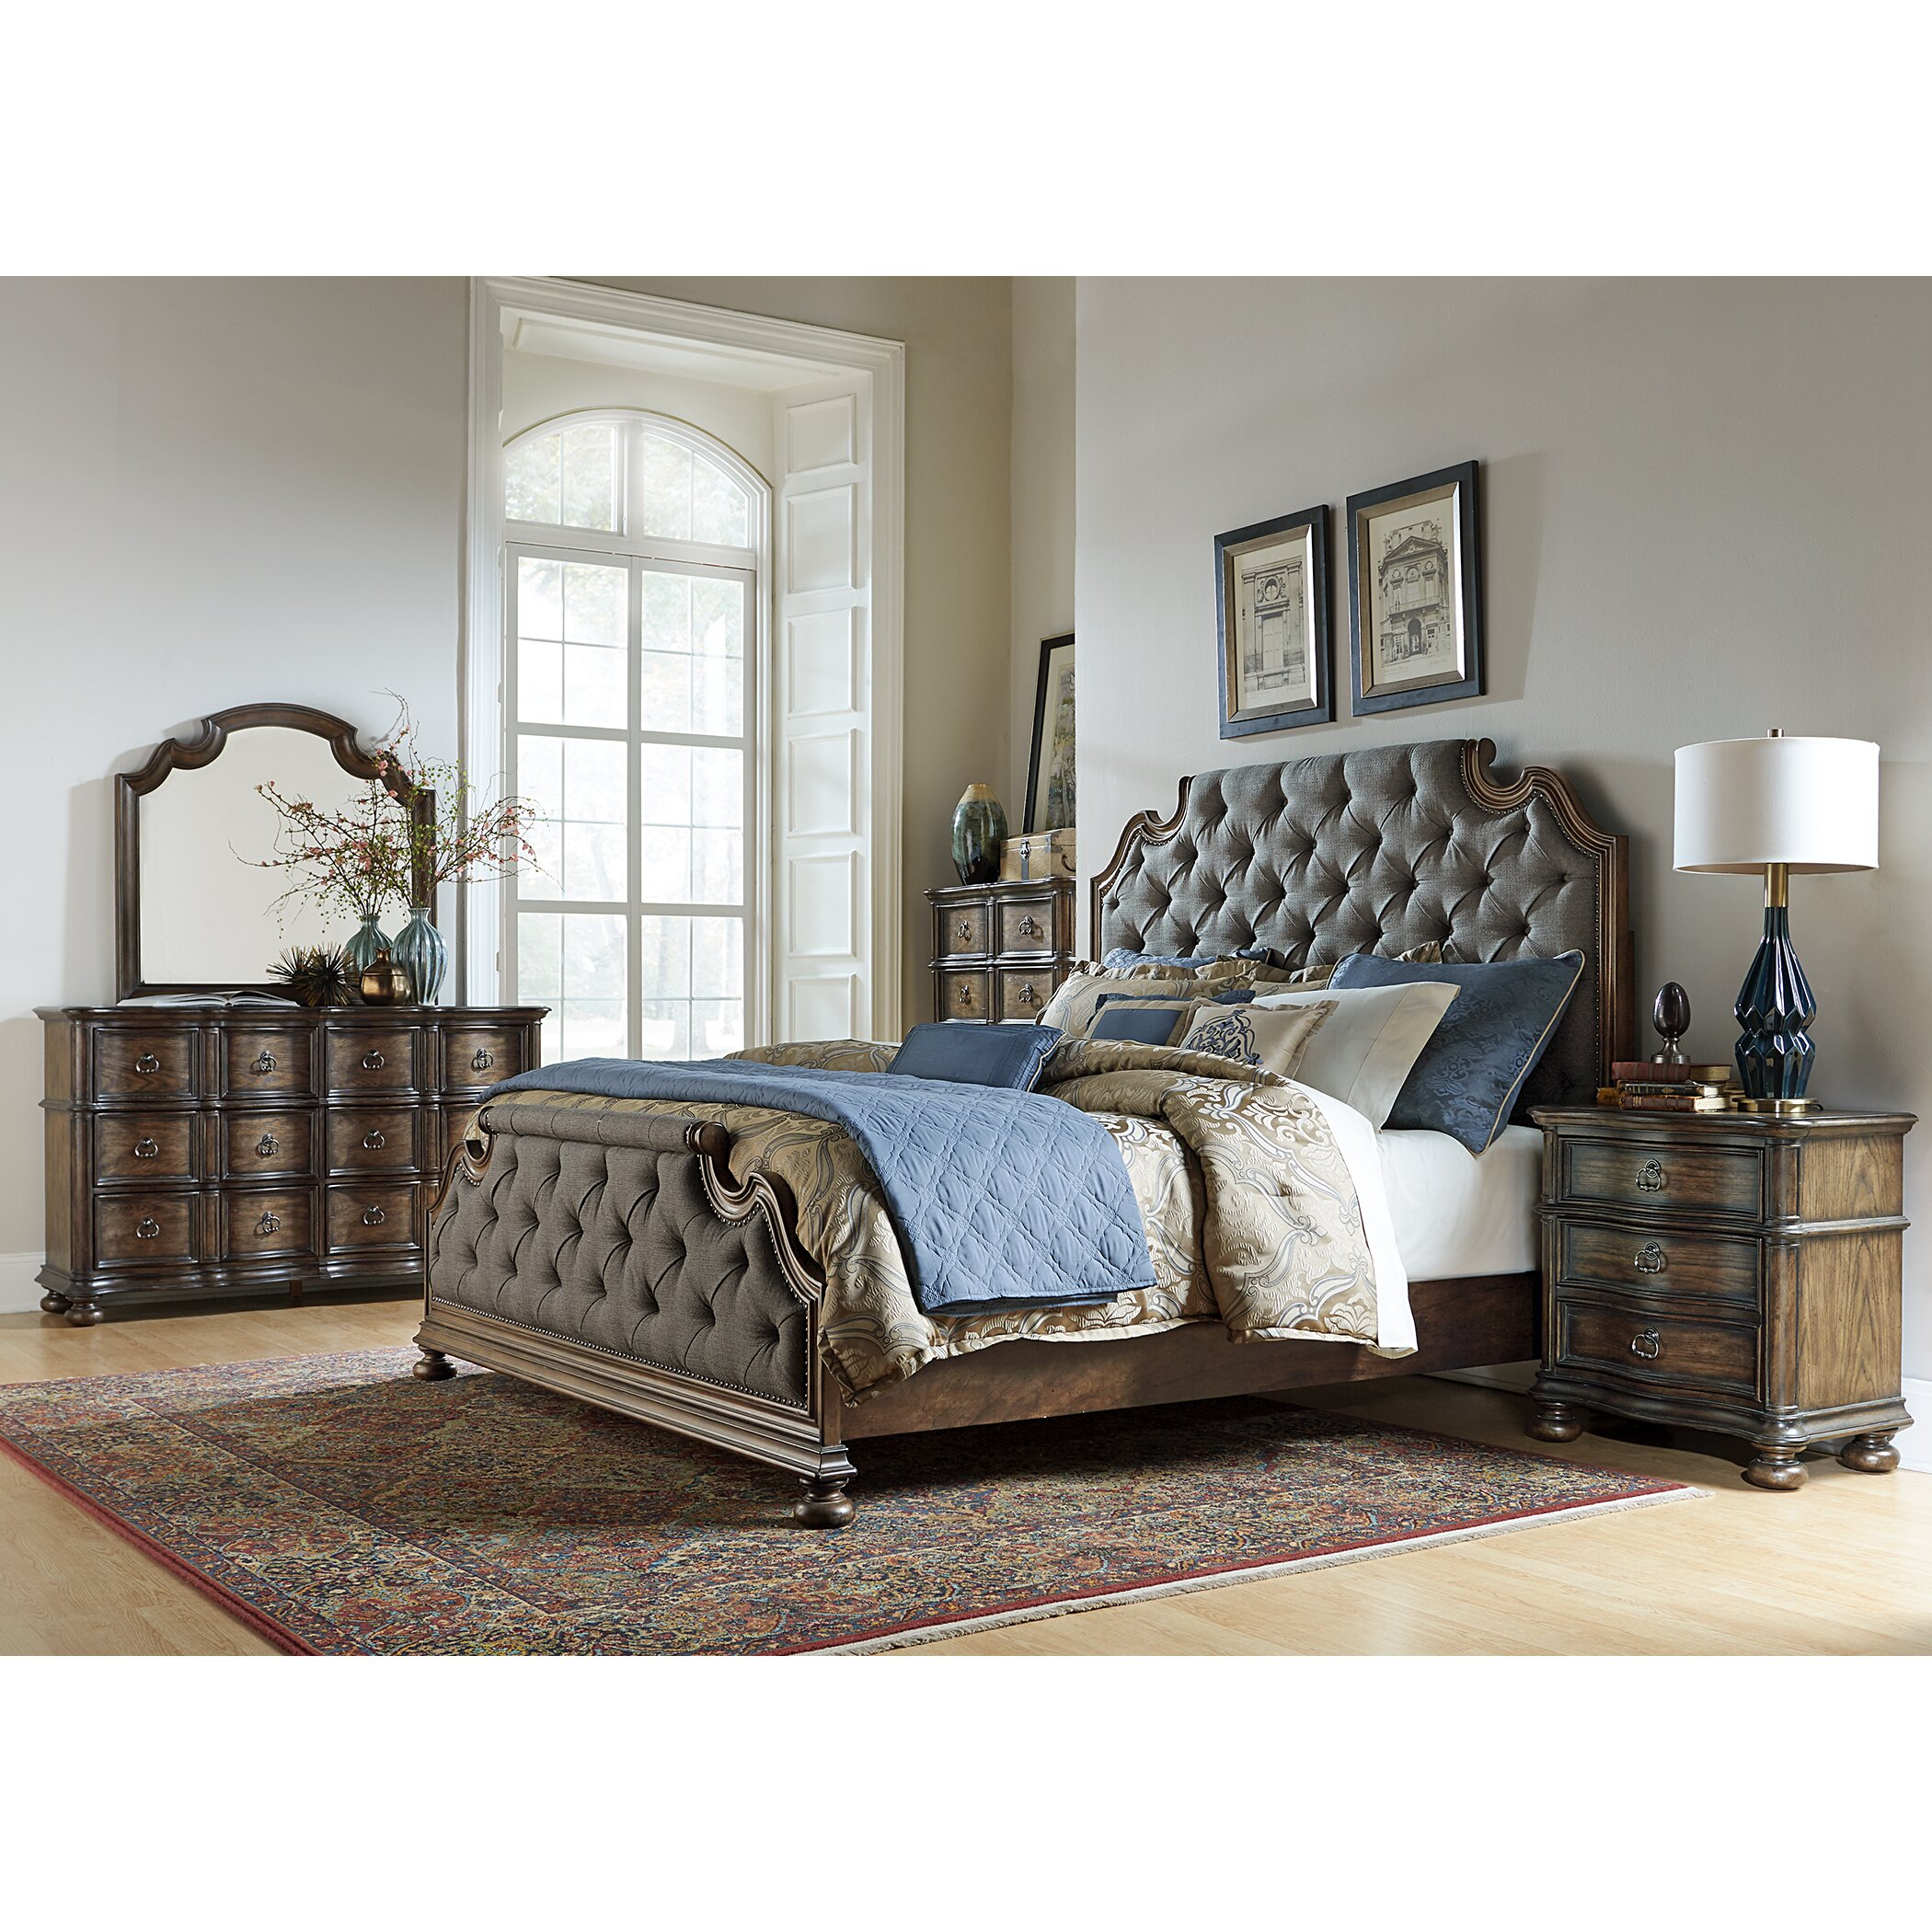 Tuscany Bedroom Furniture: Liberty Furniture Tuscan Valley Upholstered Panel Bed